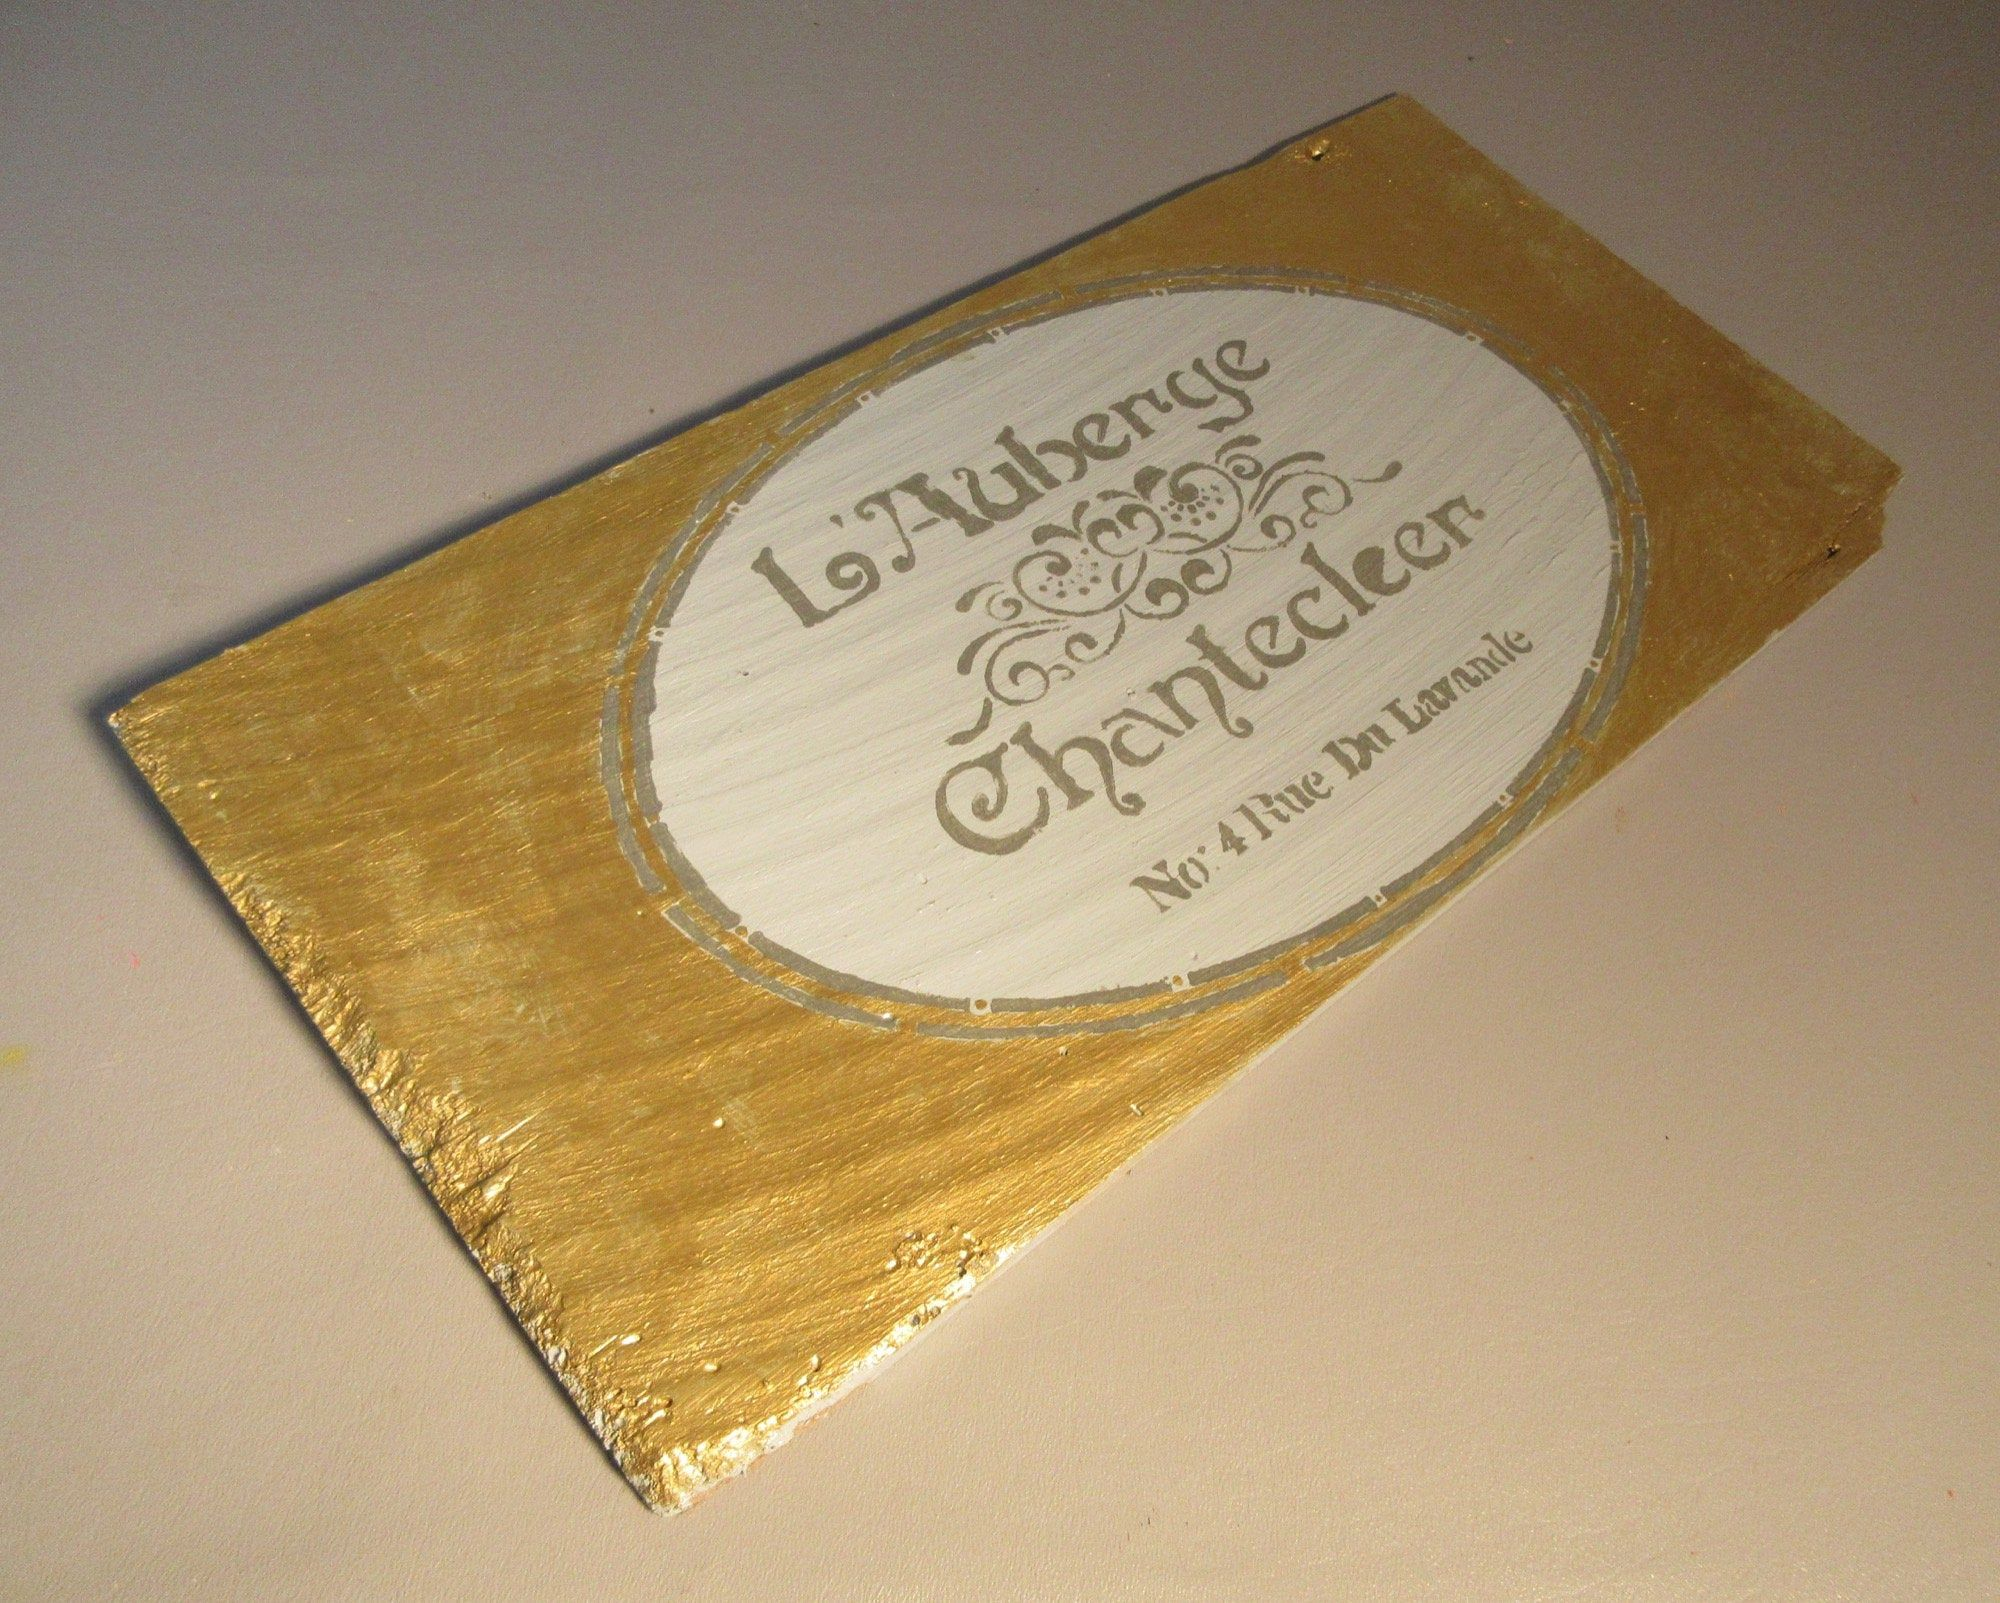 Best L'auberge Chantecleer French Country Inn Sign Paris On 640 x 480